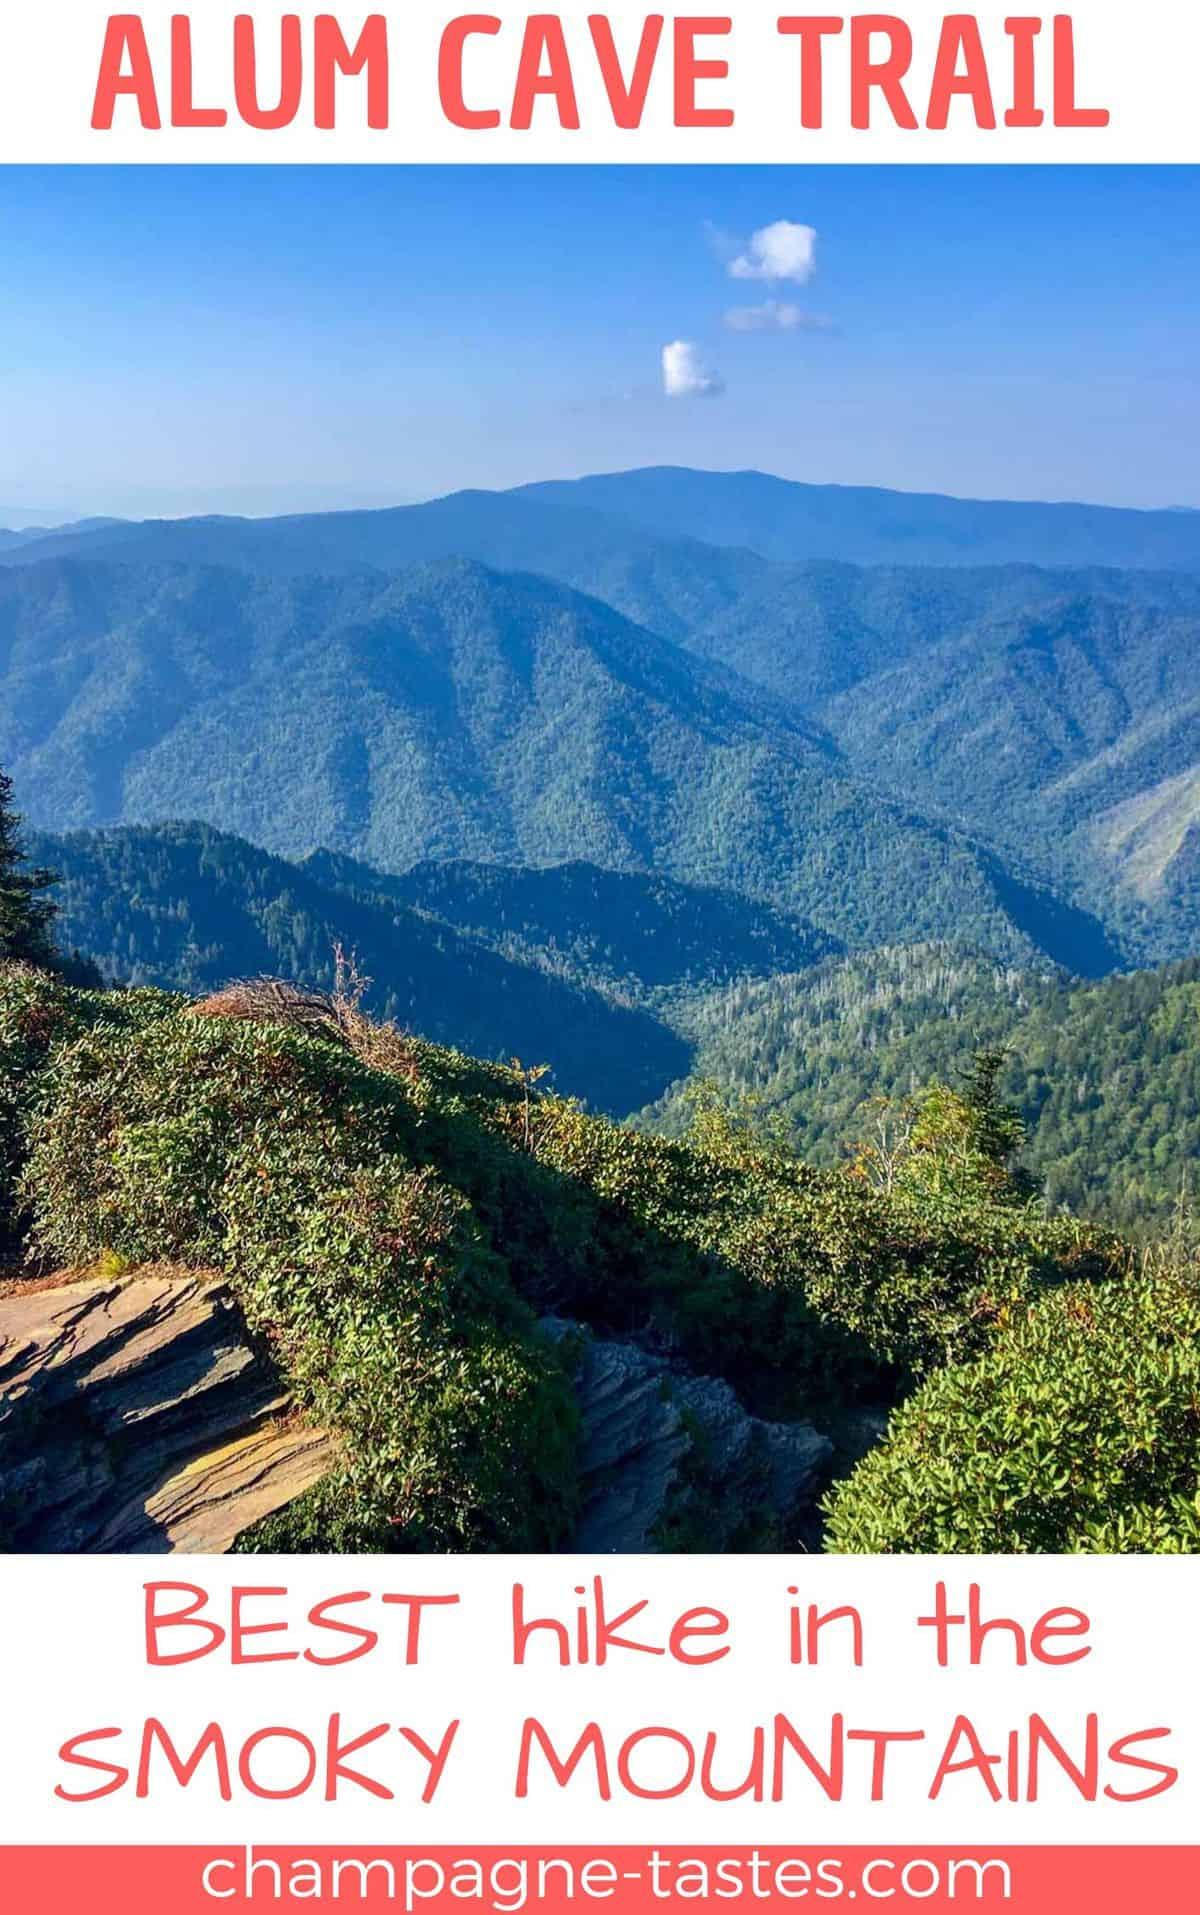 Are you visiting the Smoky Mountains, and want to go on an epic hike? Hike the Alum Cave Trail to the peak of Mount LeConte!